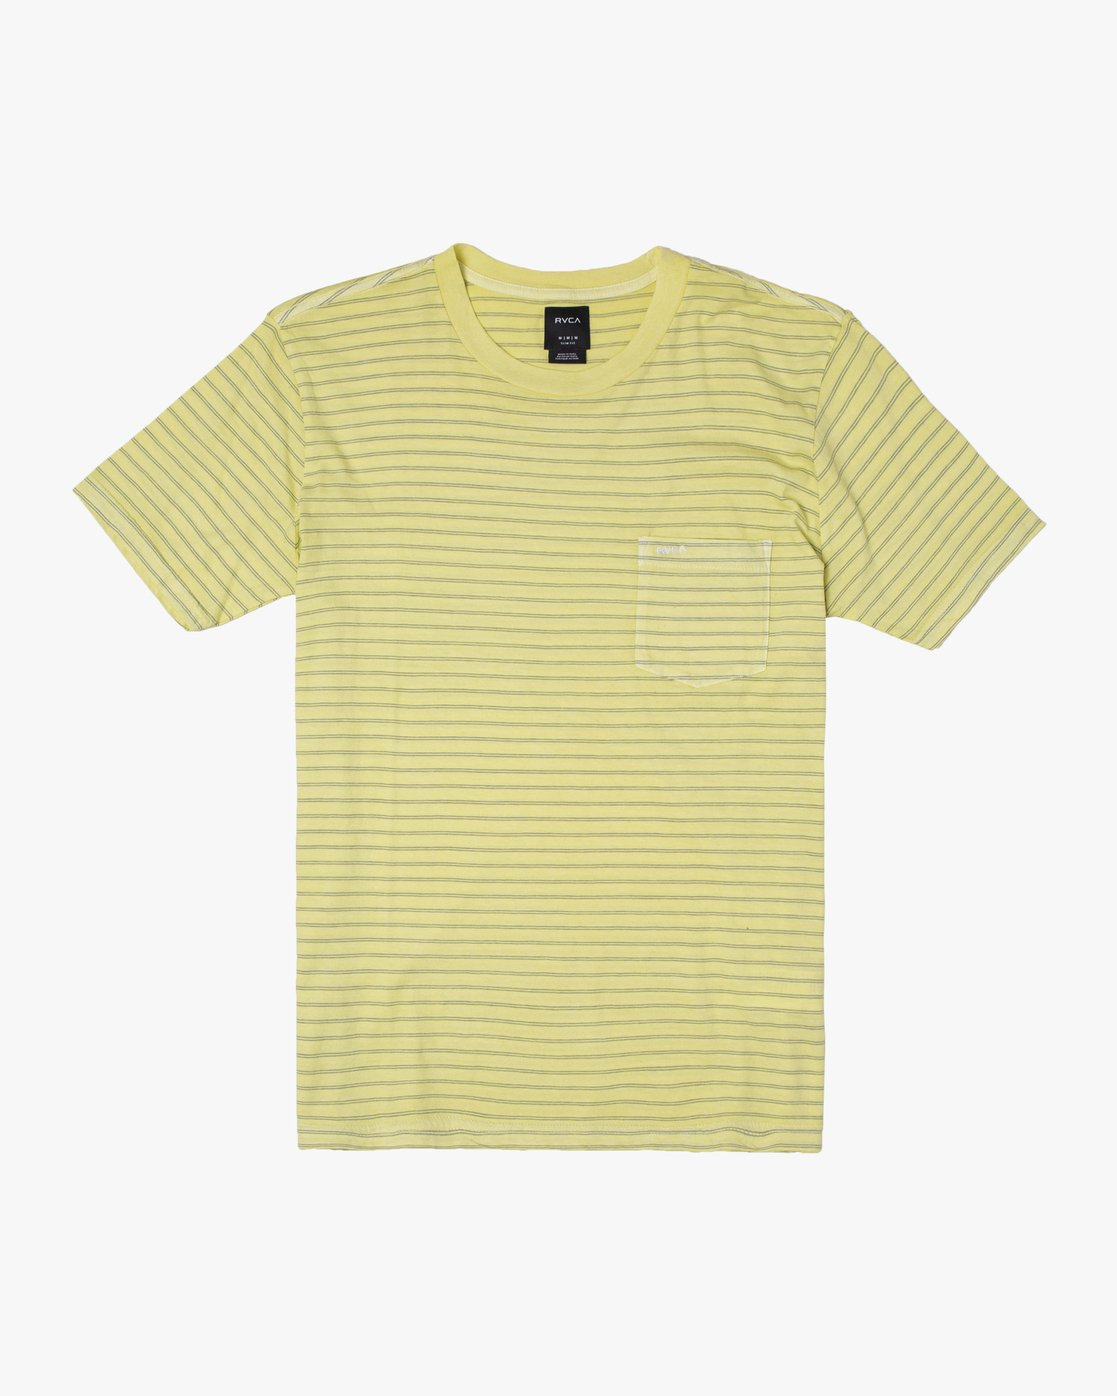 0 PTC STRIPED KNIT SHIRT Yellow M9031RPP RVCA